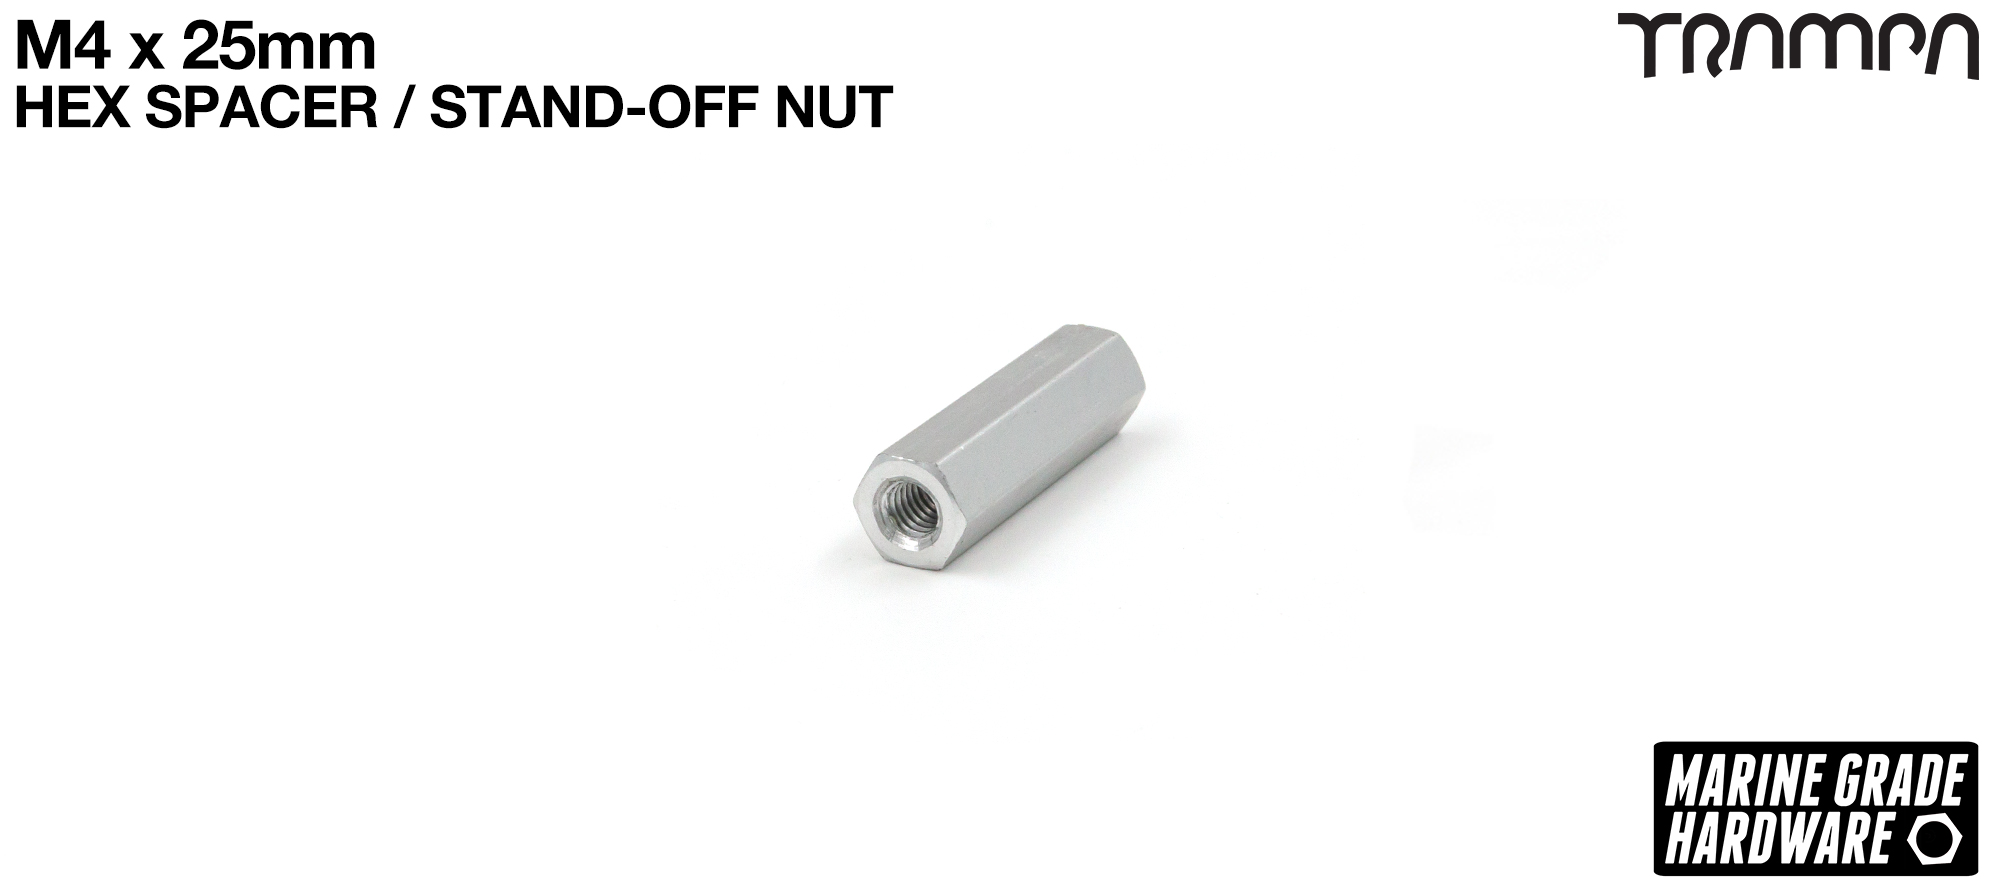 M4 x 25mm Threaded Spacer Nut stand off - Aluminum